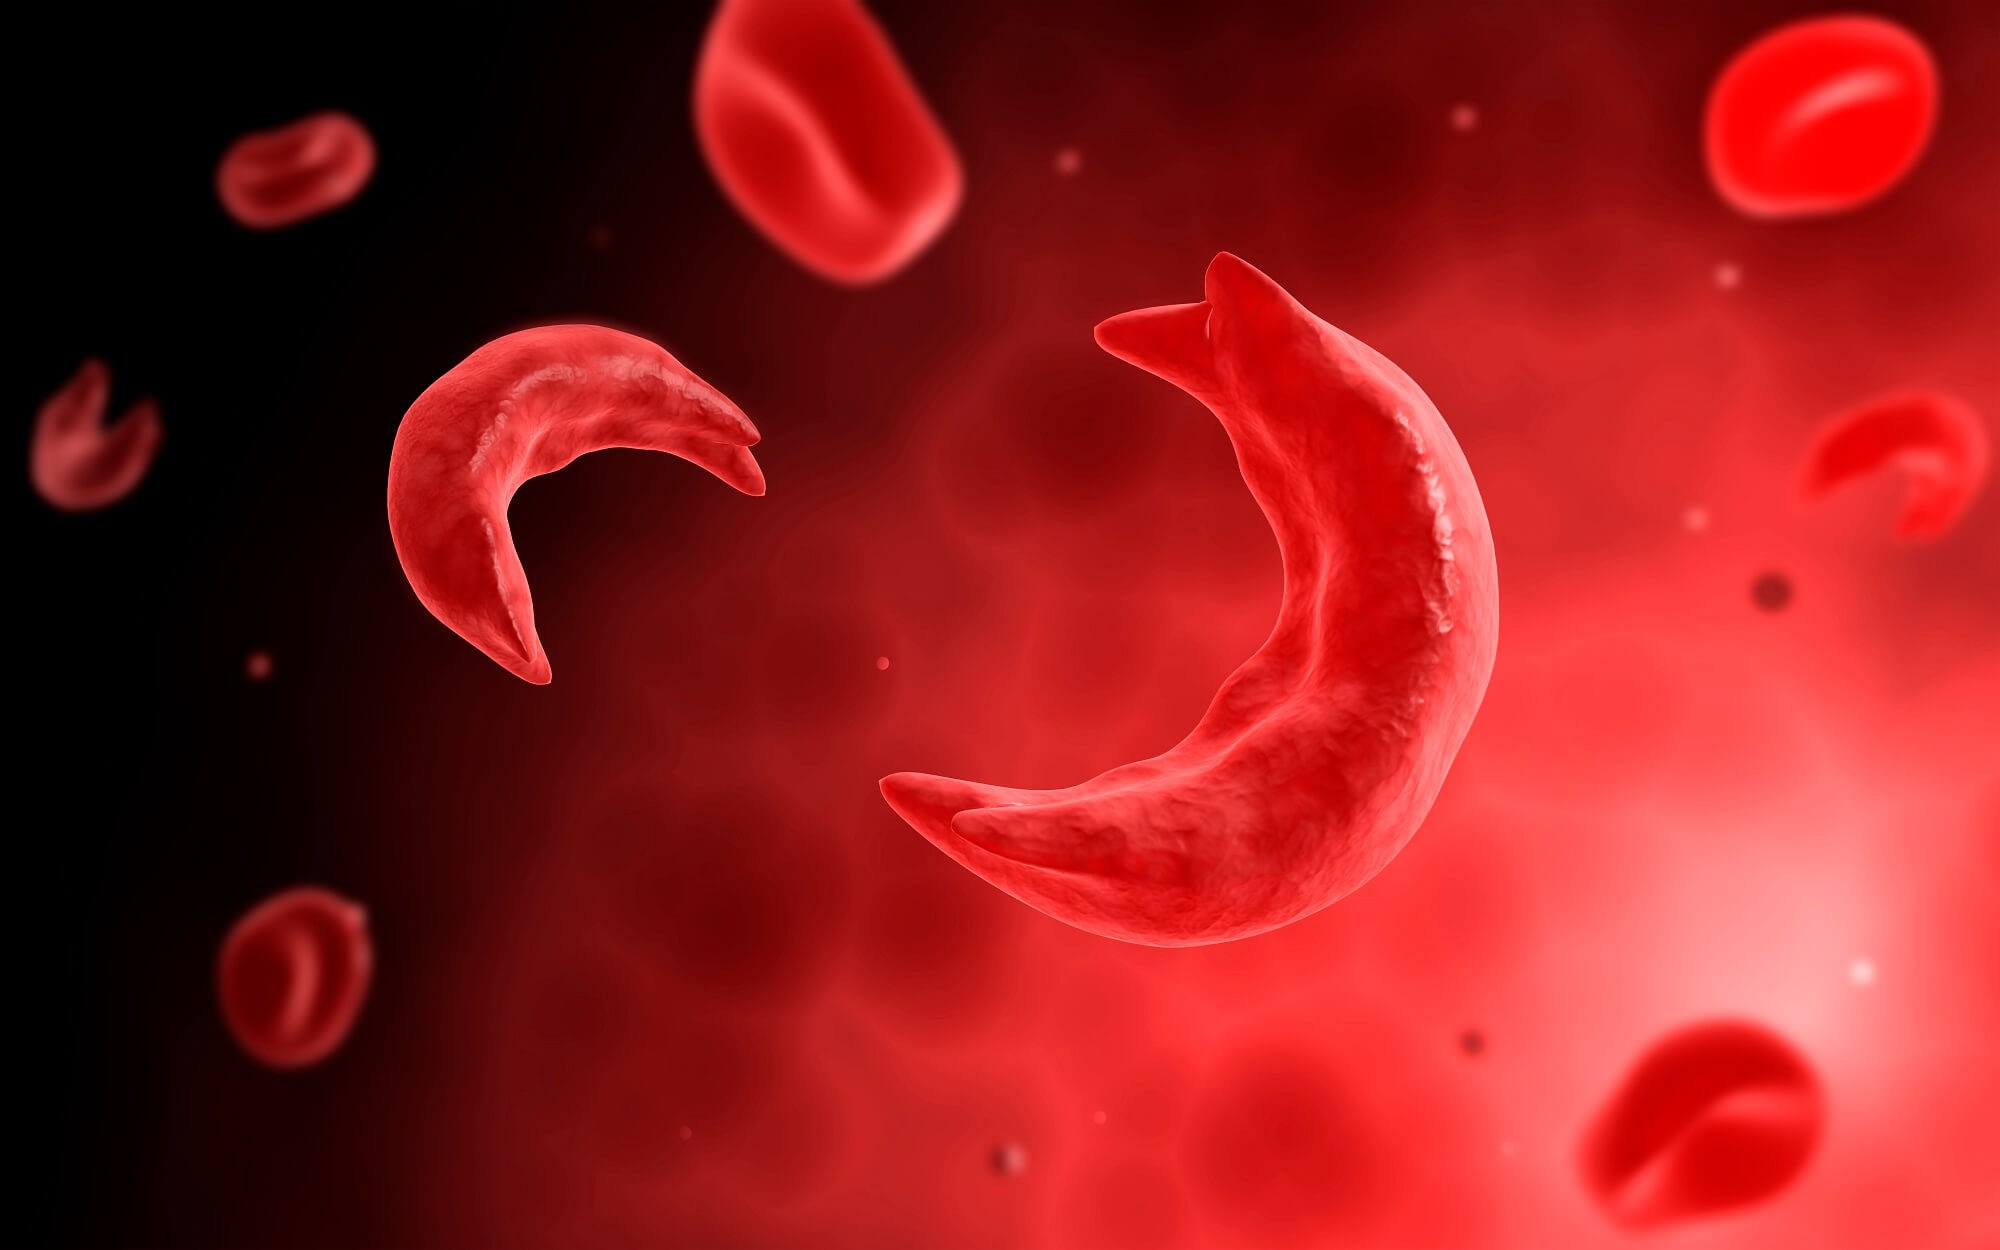 Sickle Cell Trait May Increase Risk for Some Adverse Clinical Outcomes